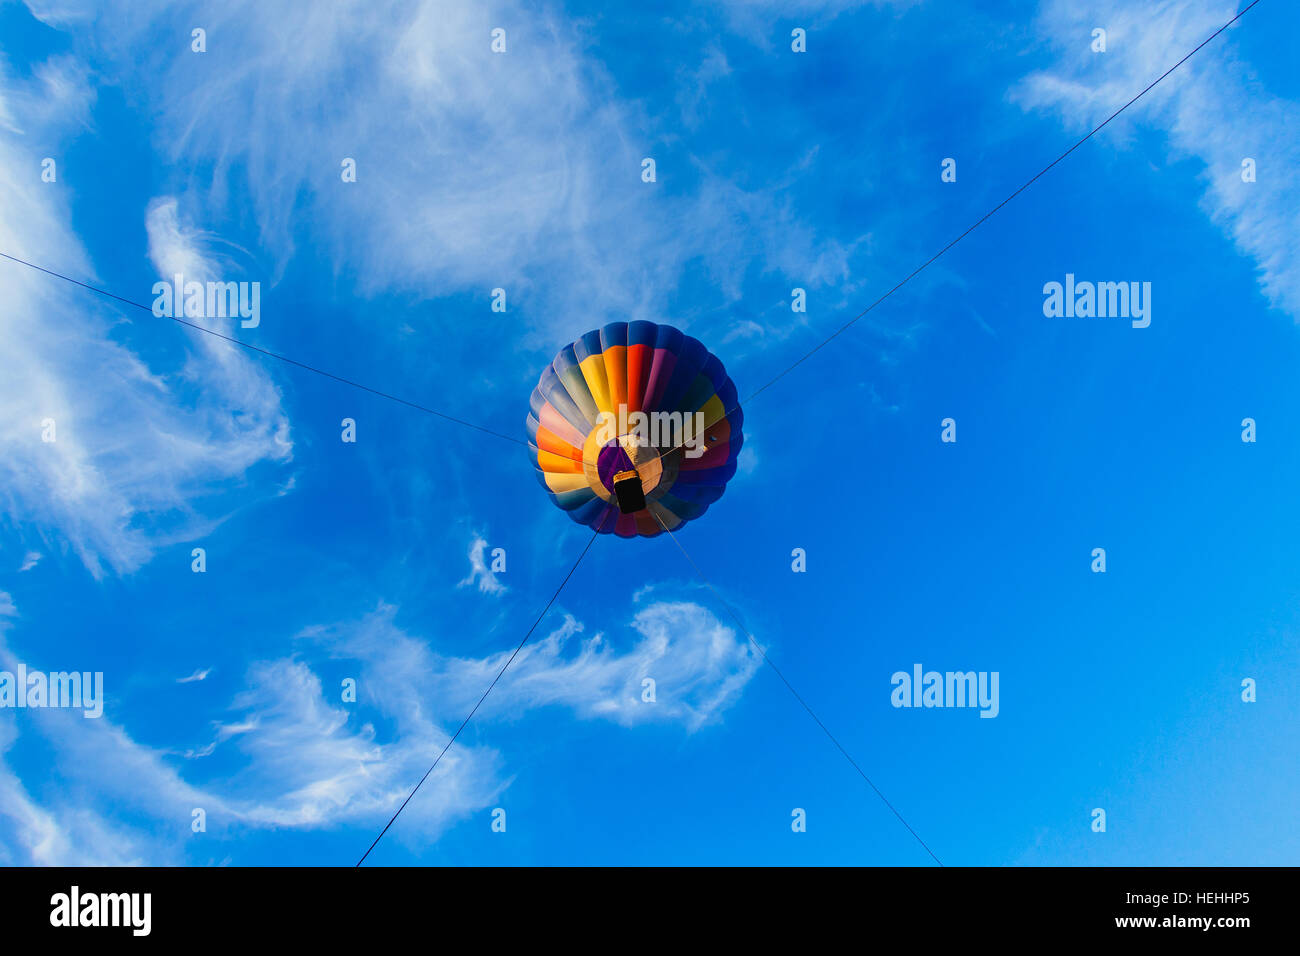 Colorful hot air balloon in blue sky at sunset - Stock Image